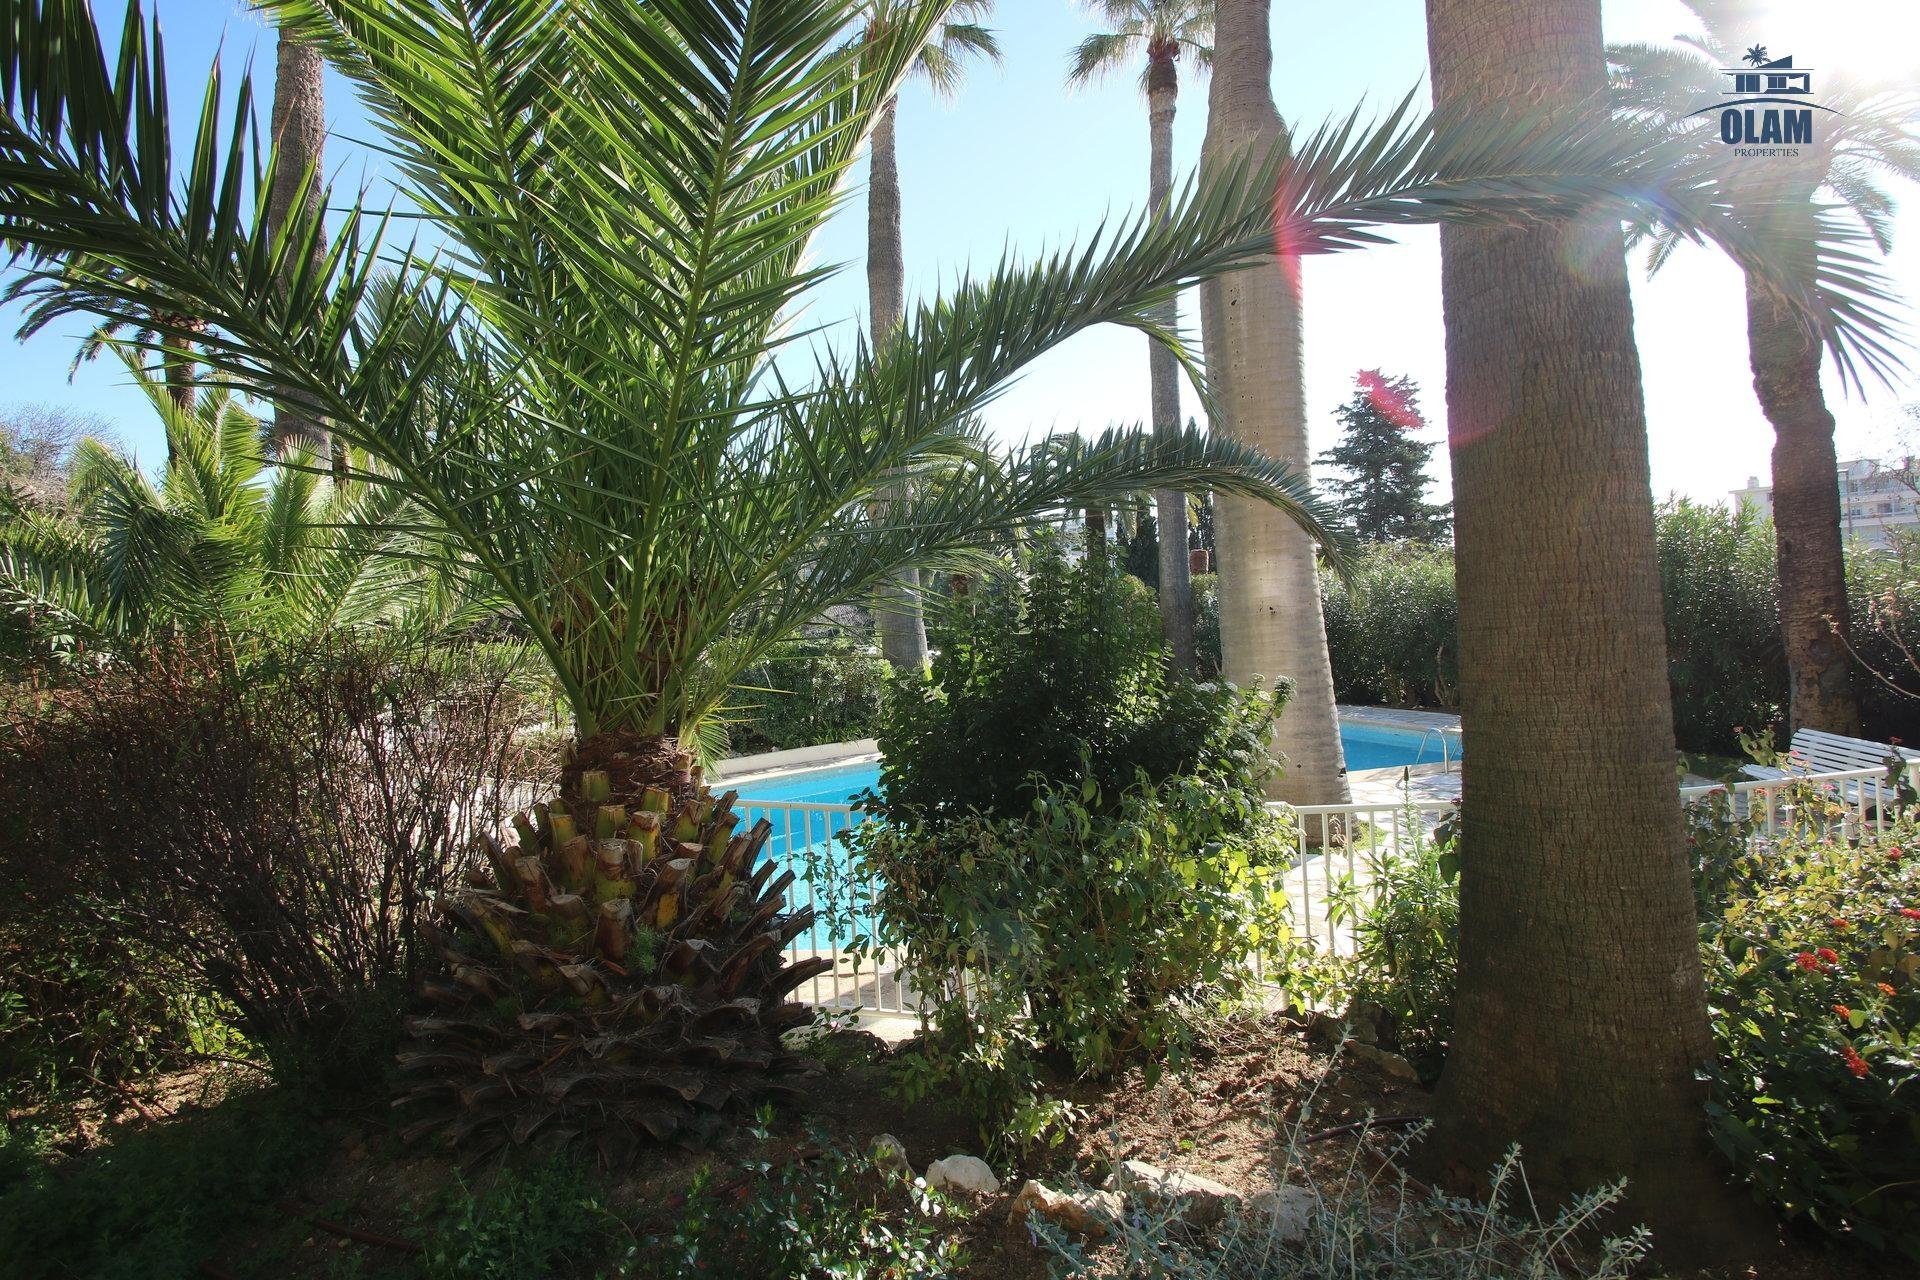 3 bedroom apartment, 3 bedrooms, 3 bathrooms, panoramic sea view